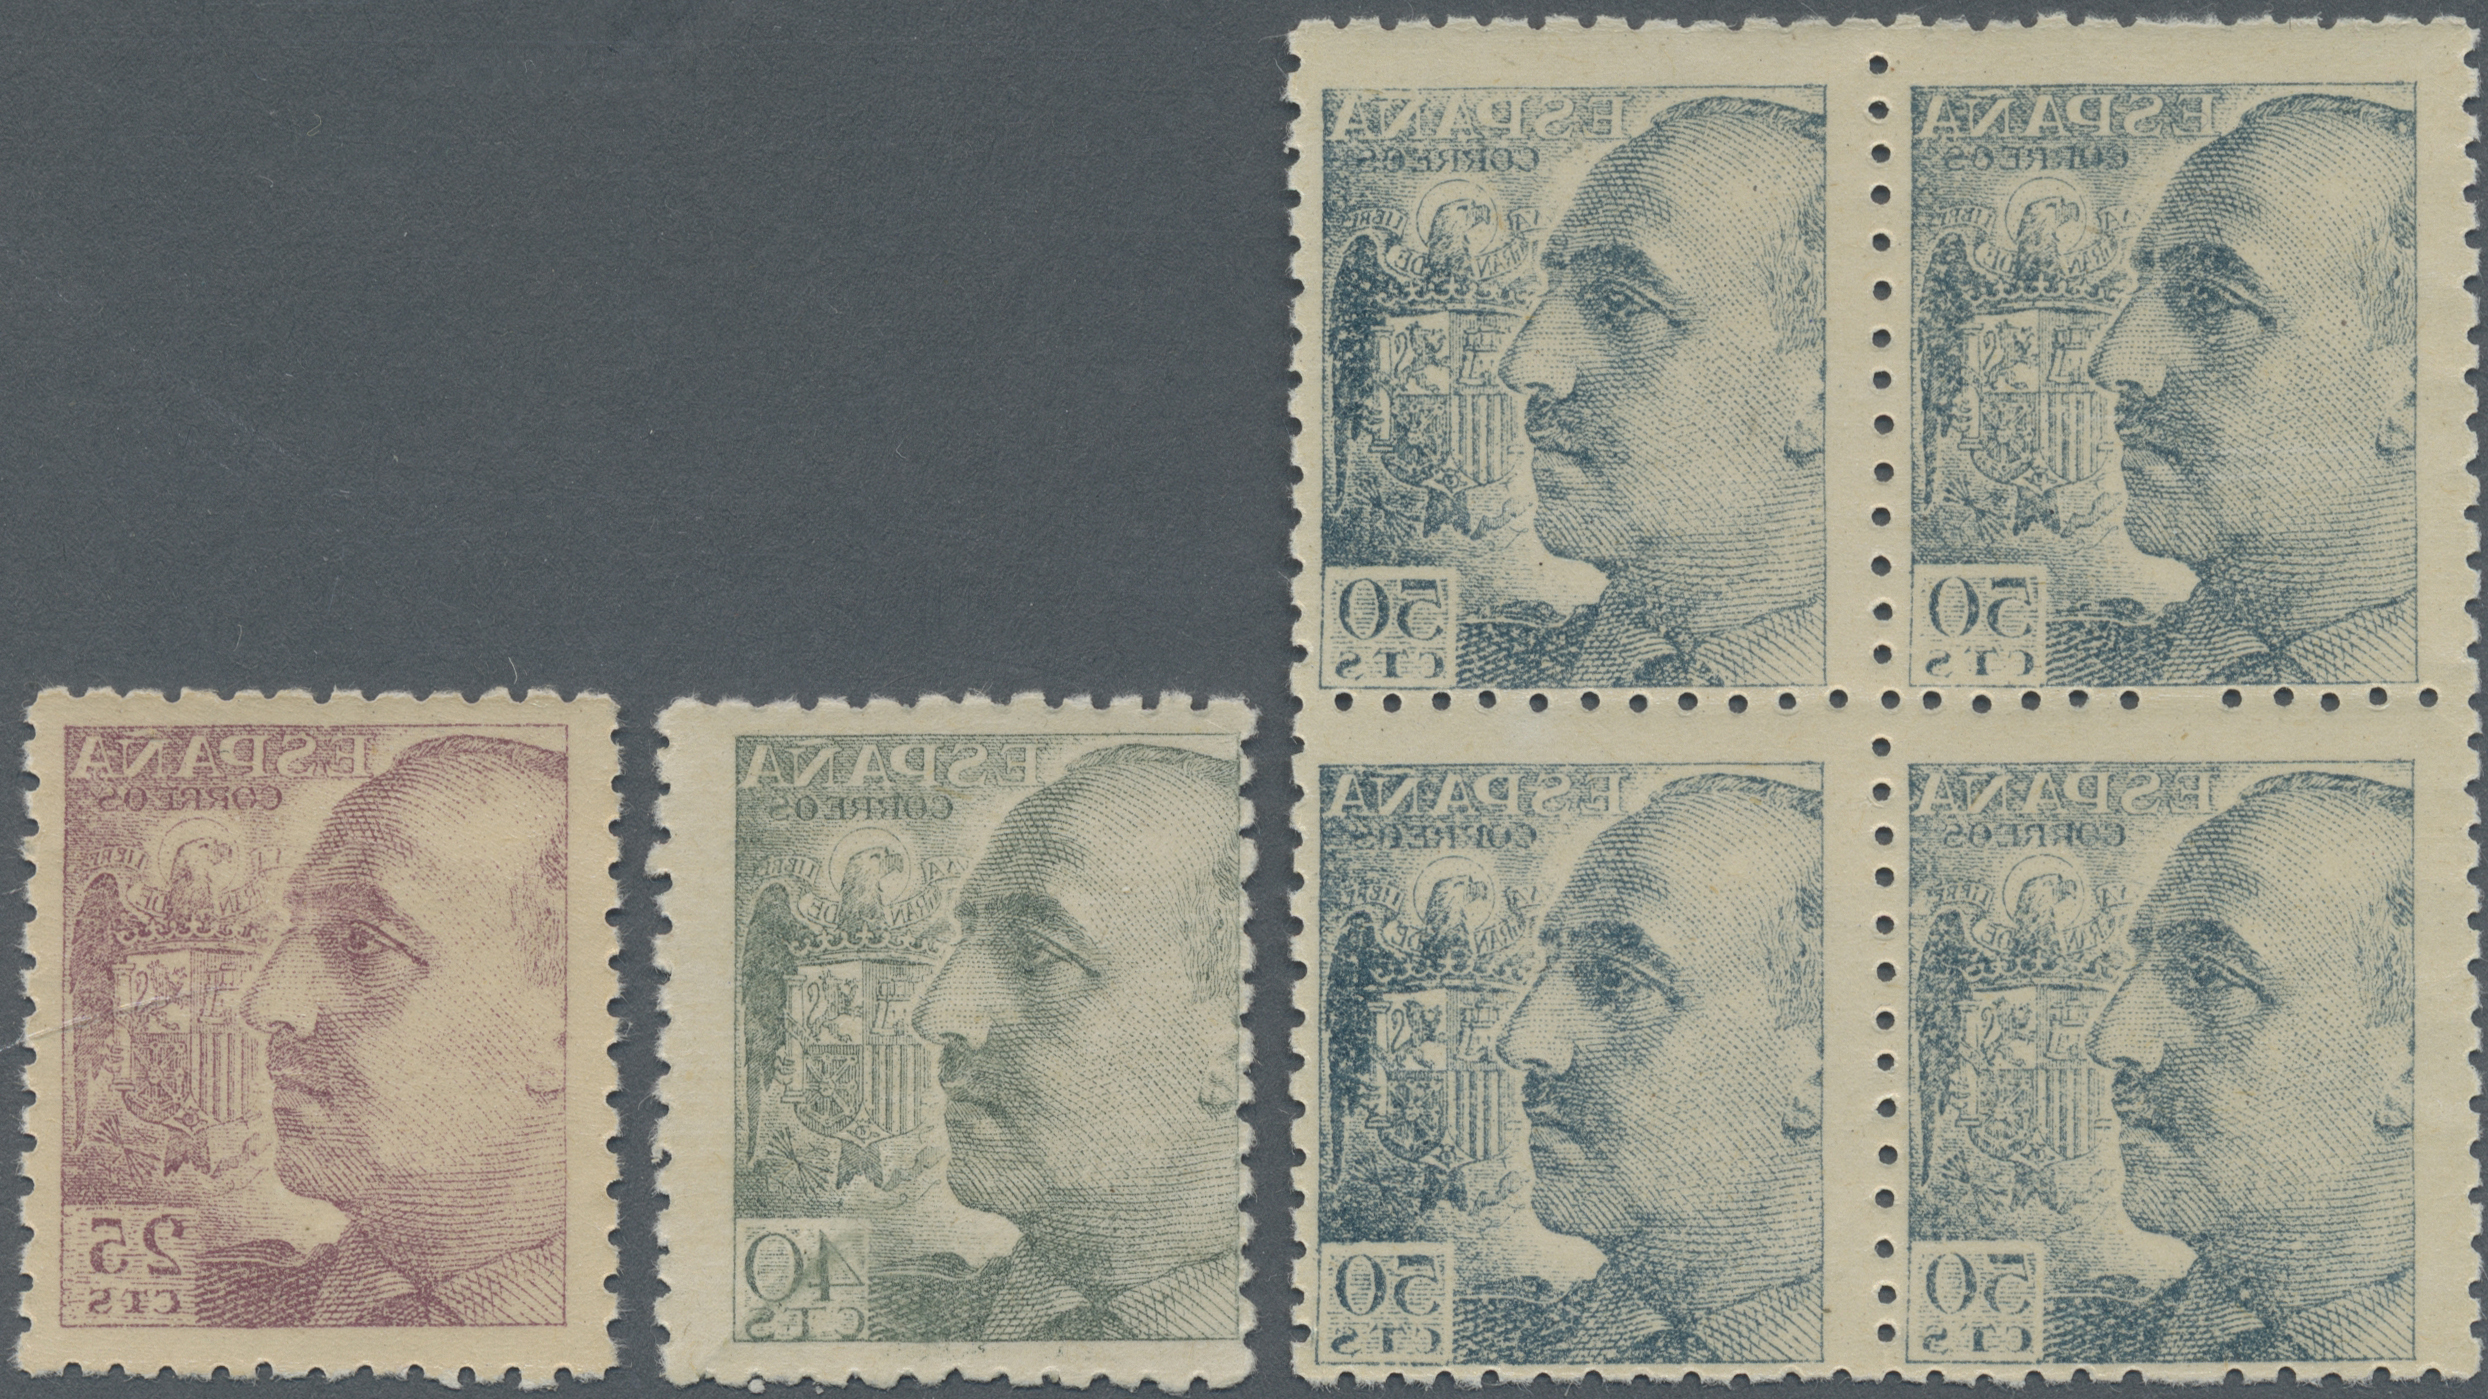 Lot 19253 - spanien  -  Auktionshaus Christoph Gärtner GmbH & Co. KG Sale #48 collections Overseas  Airmail / Ship mail & Thematics